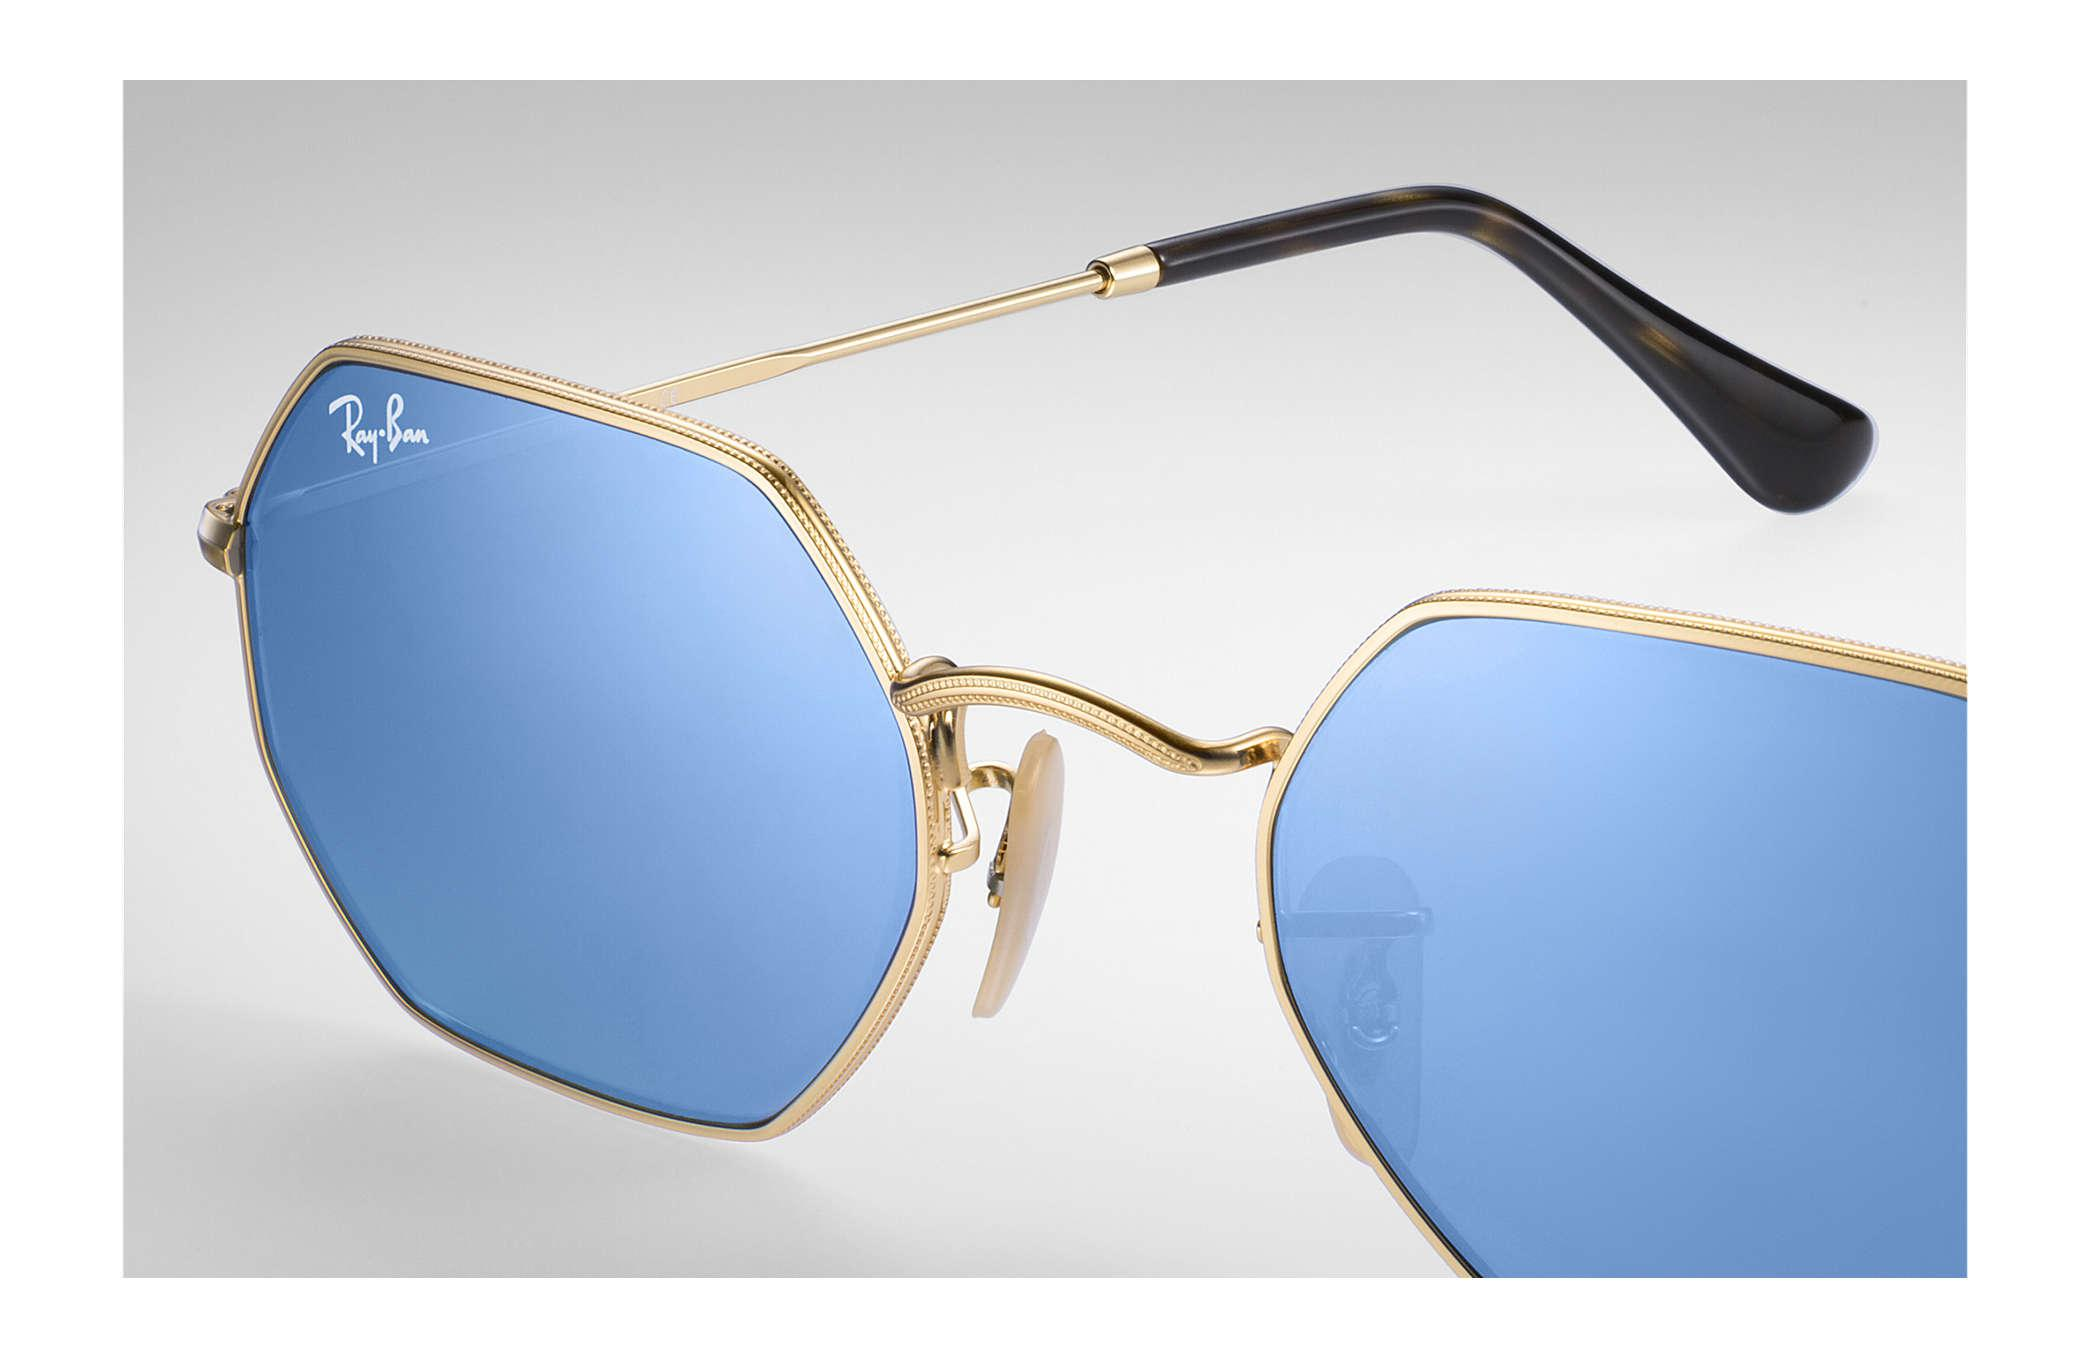 121125dc38 Ray-Ban Octagonal Flat Lenses in Blue - Save 23.684210526315795% - Lyst